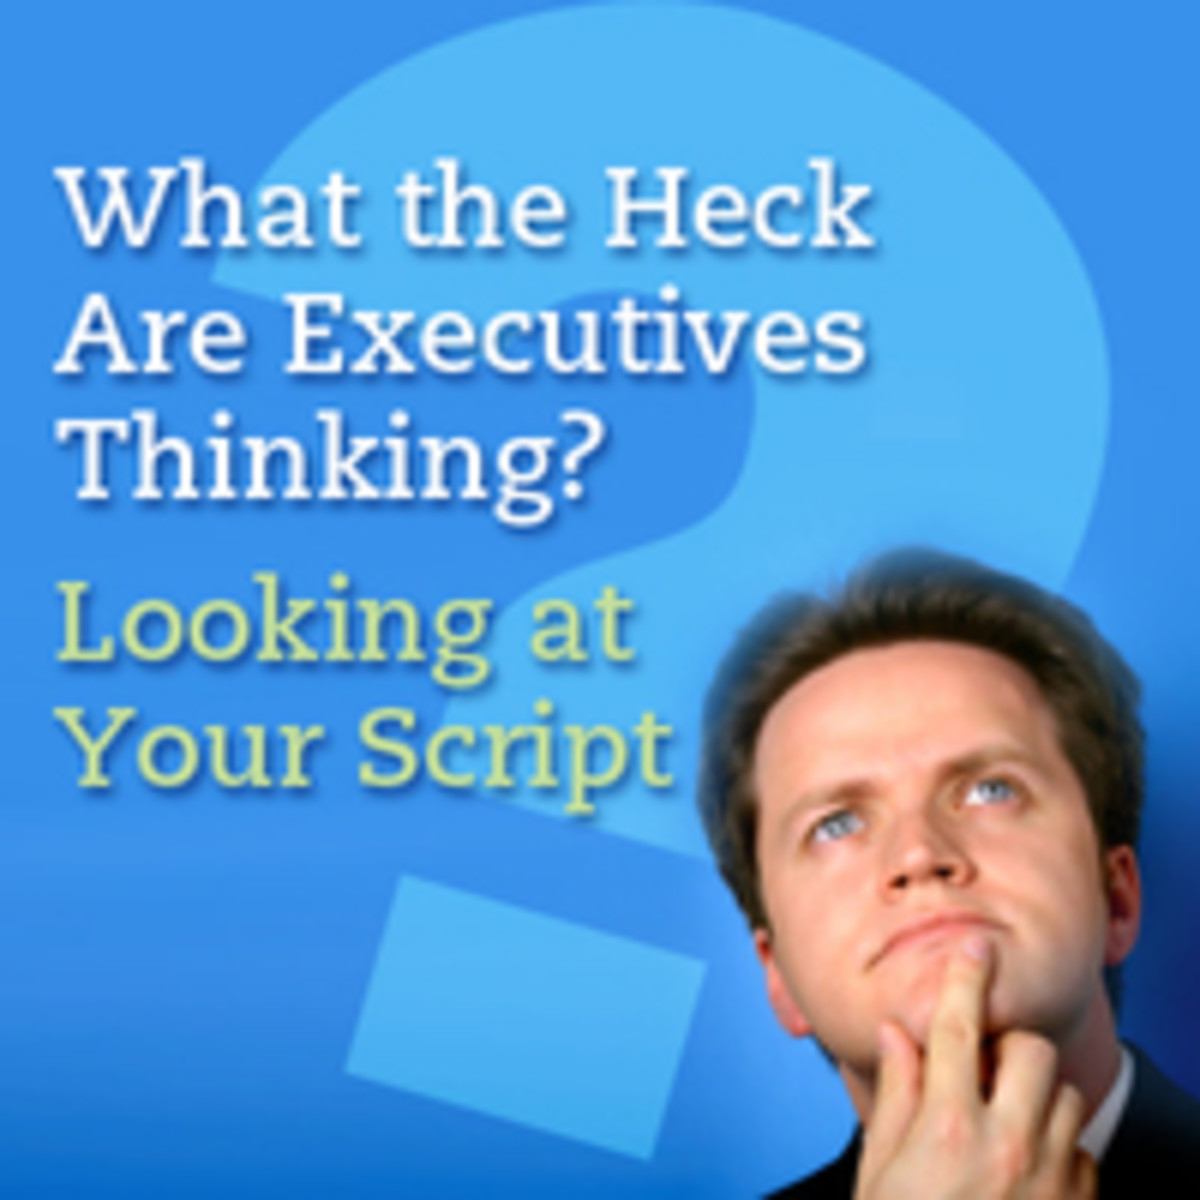 What the Heck Are Executives Thinking? Looking at Your Script from the Exec's Point of View